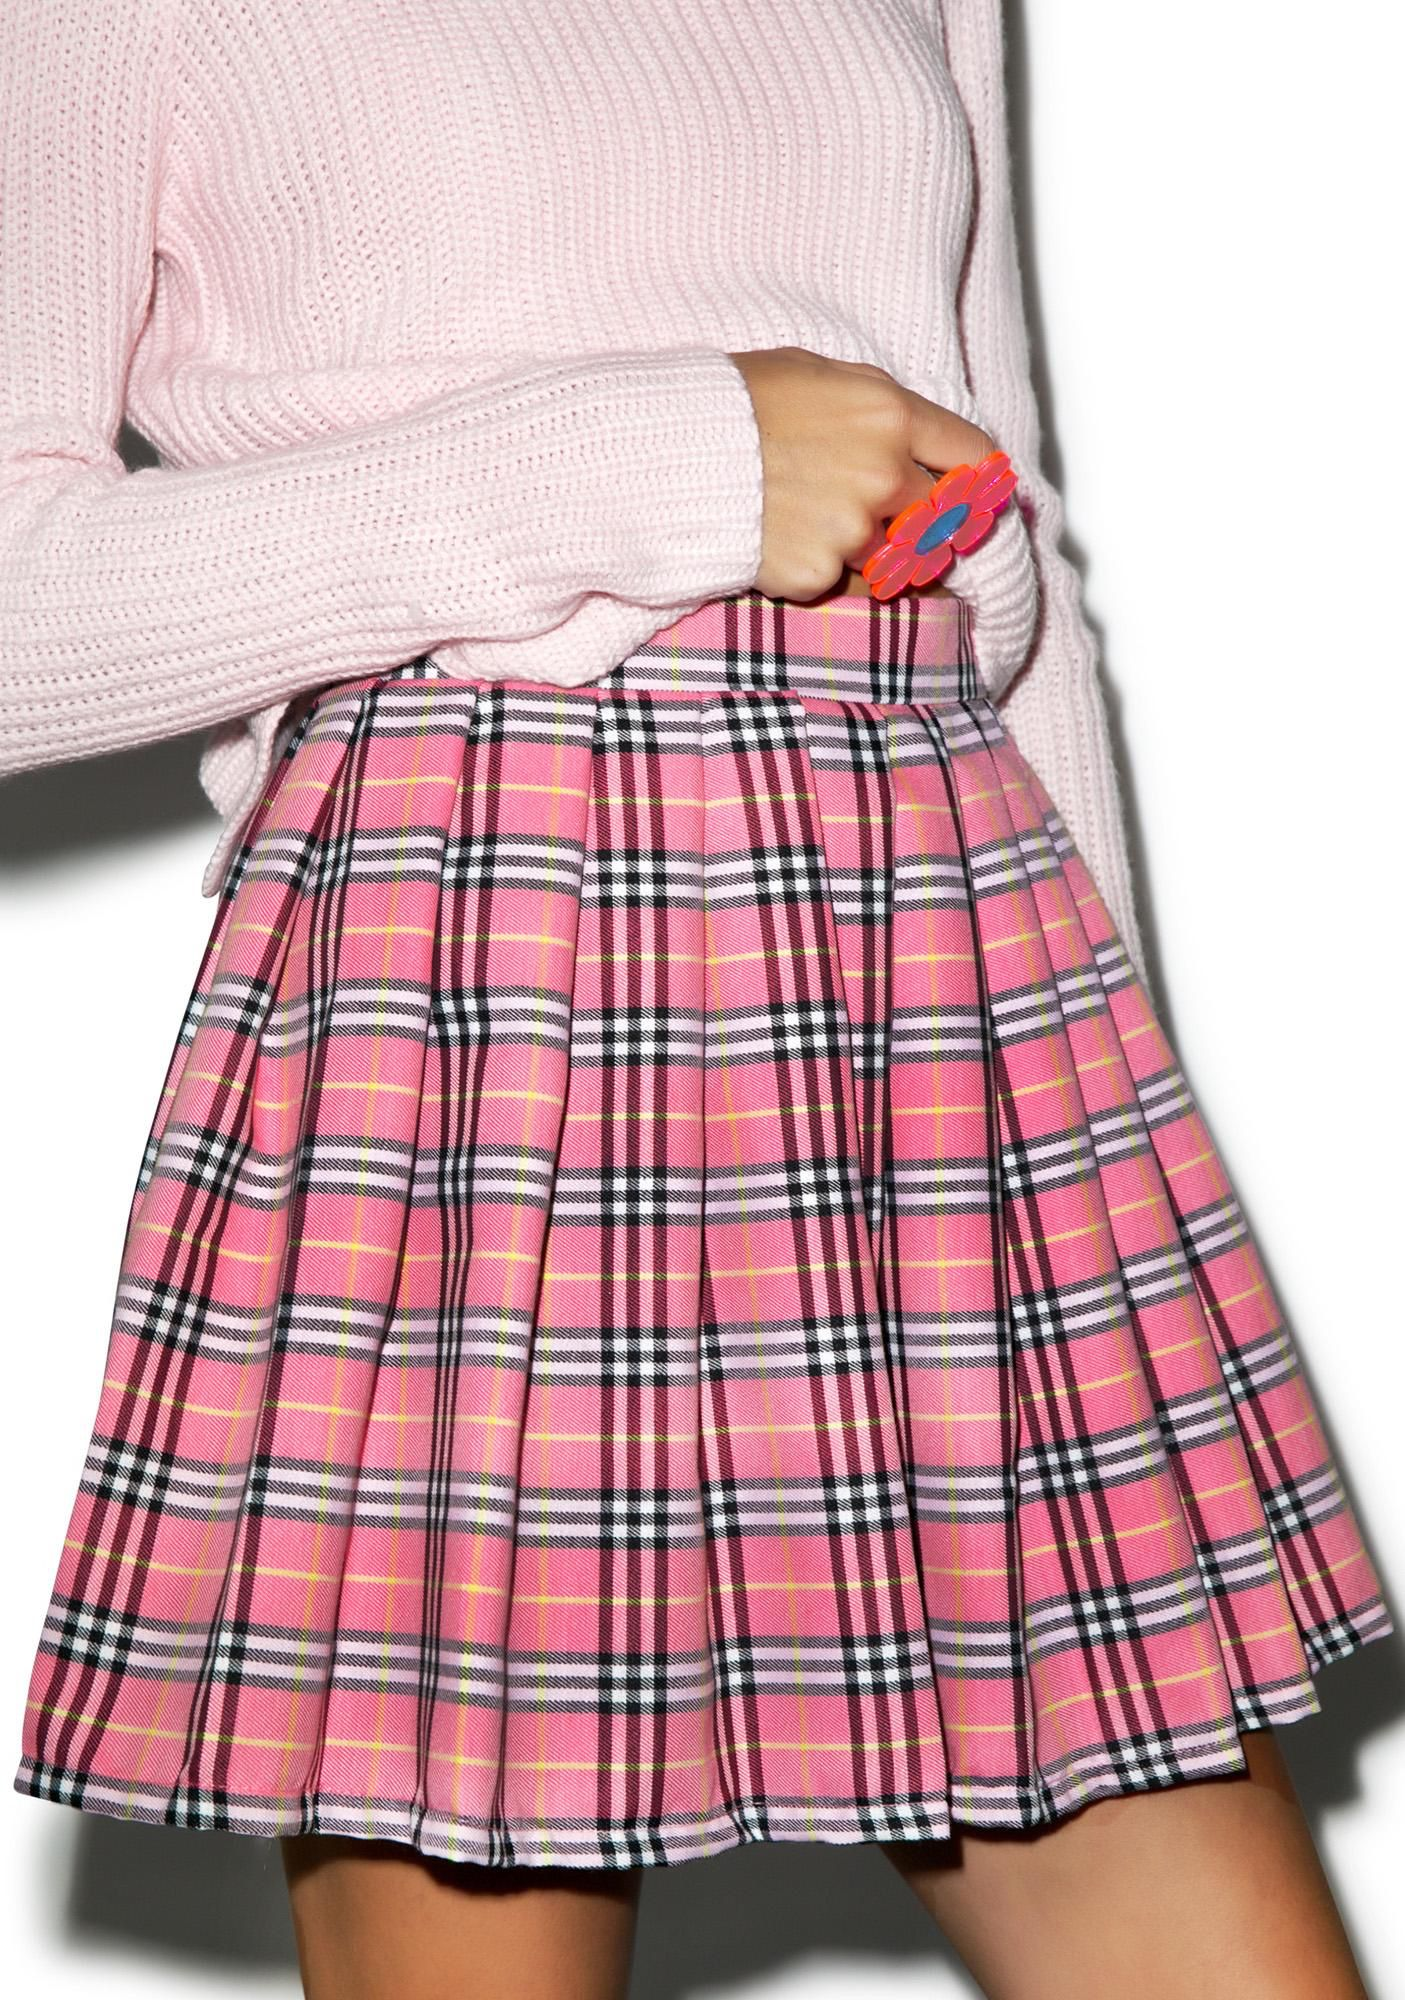 9f4faa6ad9 pink checkered skirt 👛 | clothes in 2019 | Fashion, Plaid skirts ...